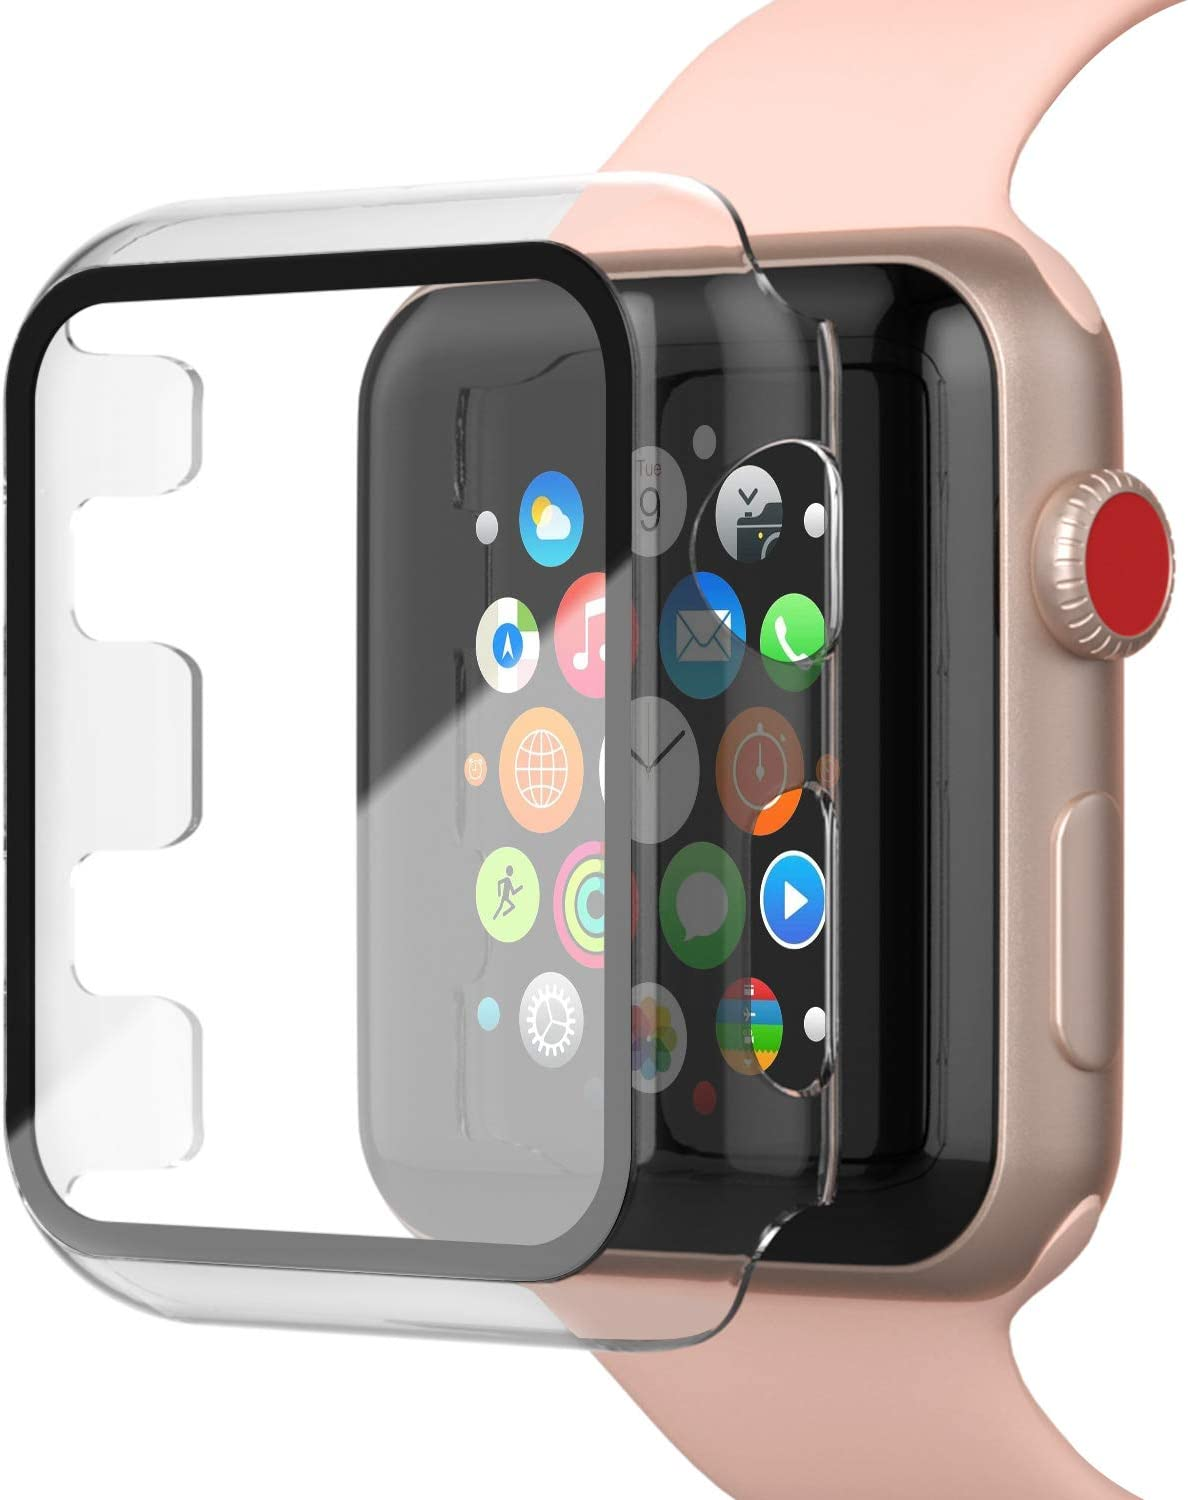 INTLIFE Case Compatible with Apple Watch Series 3 / Series 2 42mm with Screen Protector, Matte Hard PC Protective Cover with Tempered Glass Screen Protector Accessories for iWatch (Transparent)